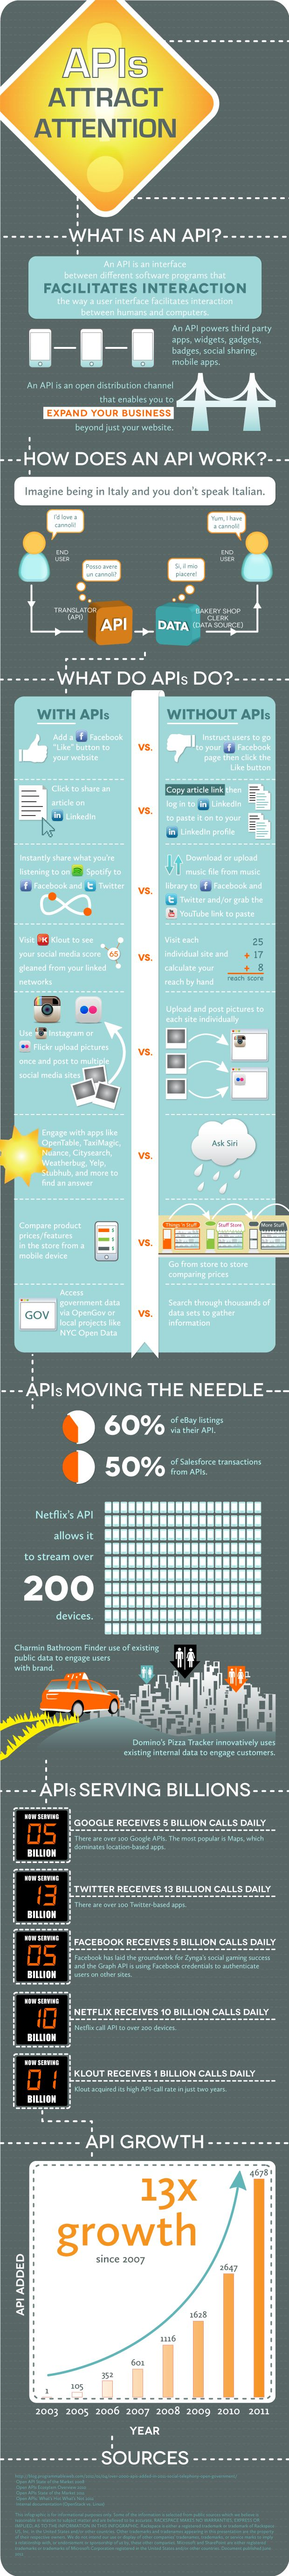 You probably use application programming interfaces (APIs) multiple times a day and aren't even aware of it. They make it easier to share photos with friends, access massive data stores and drive new app development. With the rise of APIs, including our own Open Cloud API, we've compiled an overview to help you understand how APIs work, how you're already using them, and how businesses are finding big successes with APIs.